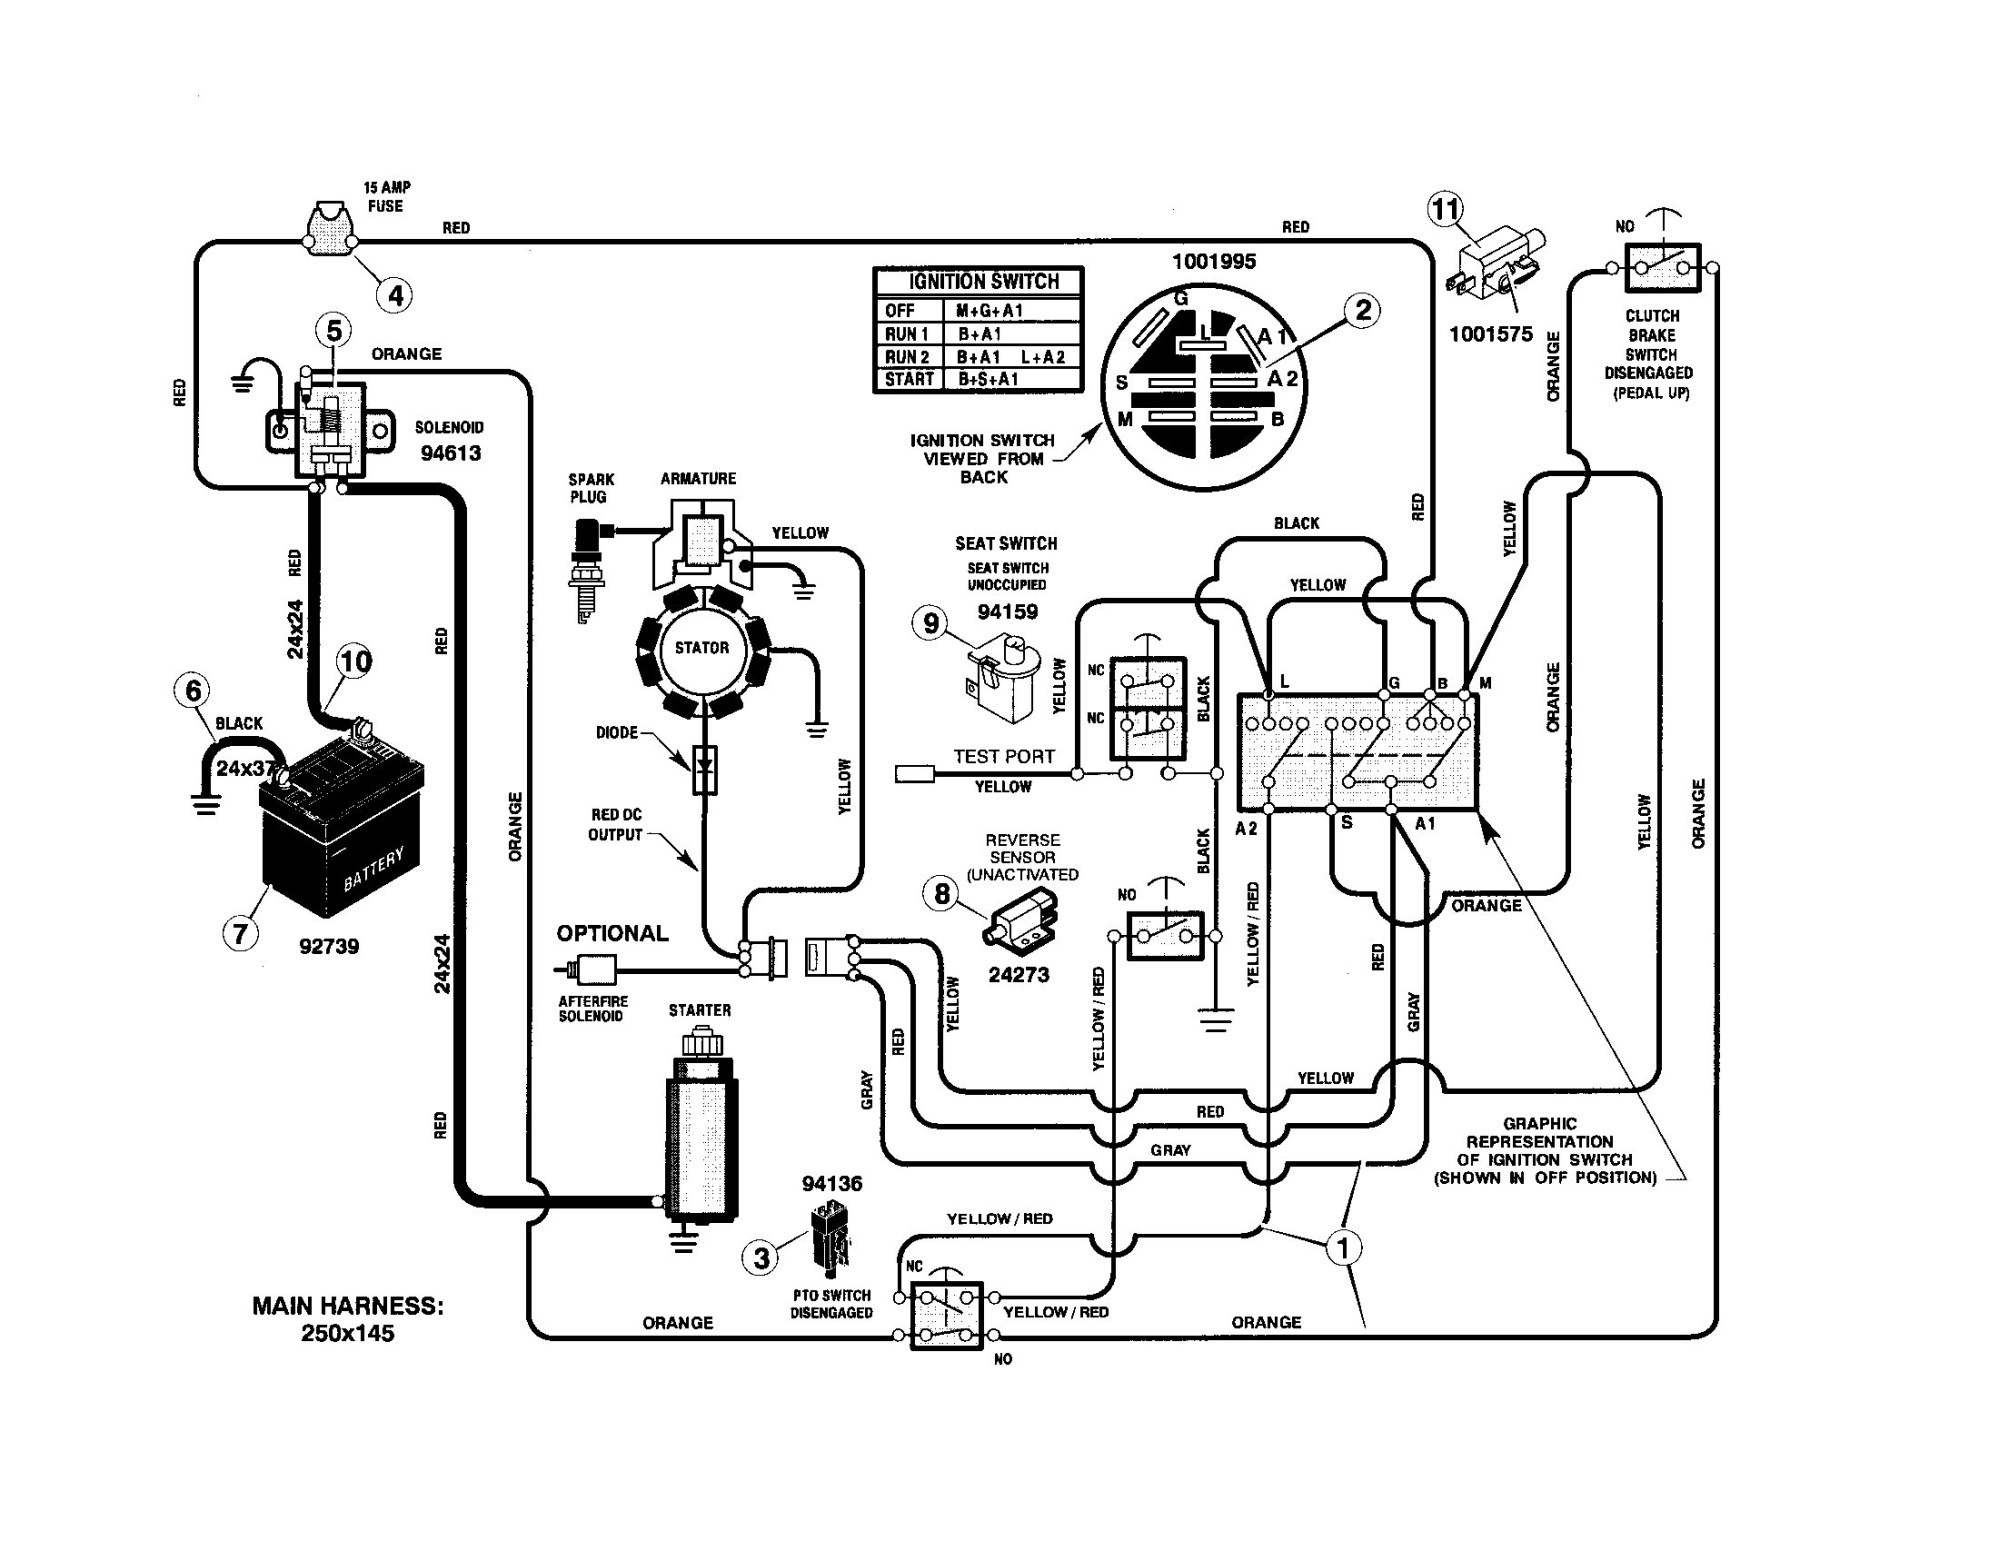 hight resolution of wiring diagram for murray riding lawn mower solenoid